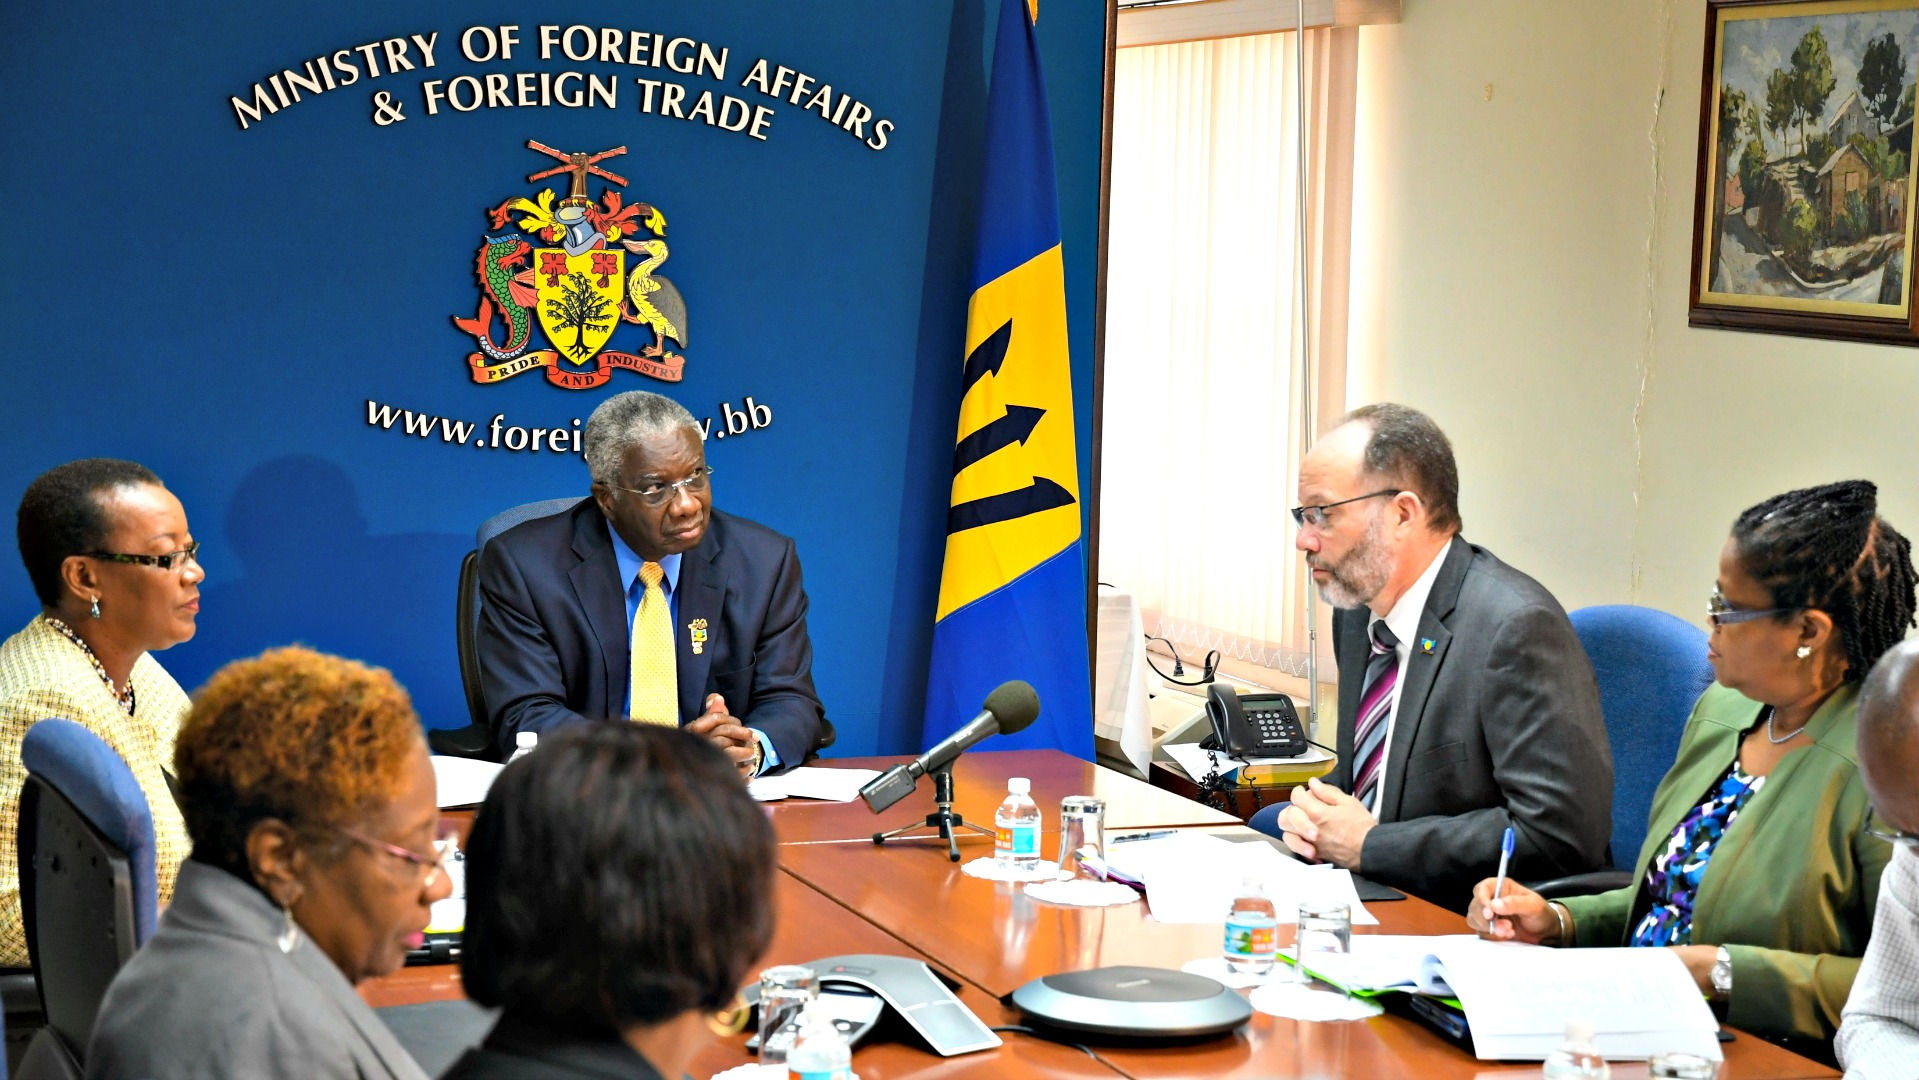 Prime Minister Freundel Stuart (at head of table), listens attentively to CARICOM Secretary-General, Ambassador Irwin LaRocque, during the meeting. To Ambassador LaRocque's right is Programme Manager for Culture and Community Developemnt at the CARICOM Secretariat, Dr. Hilary Brown. (RB/BGIS)